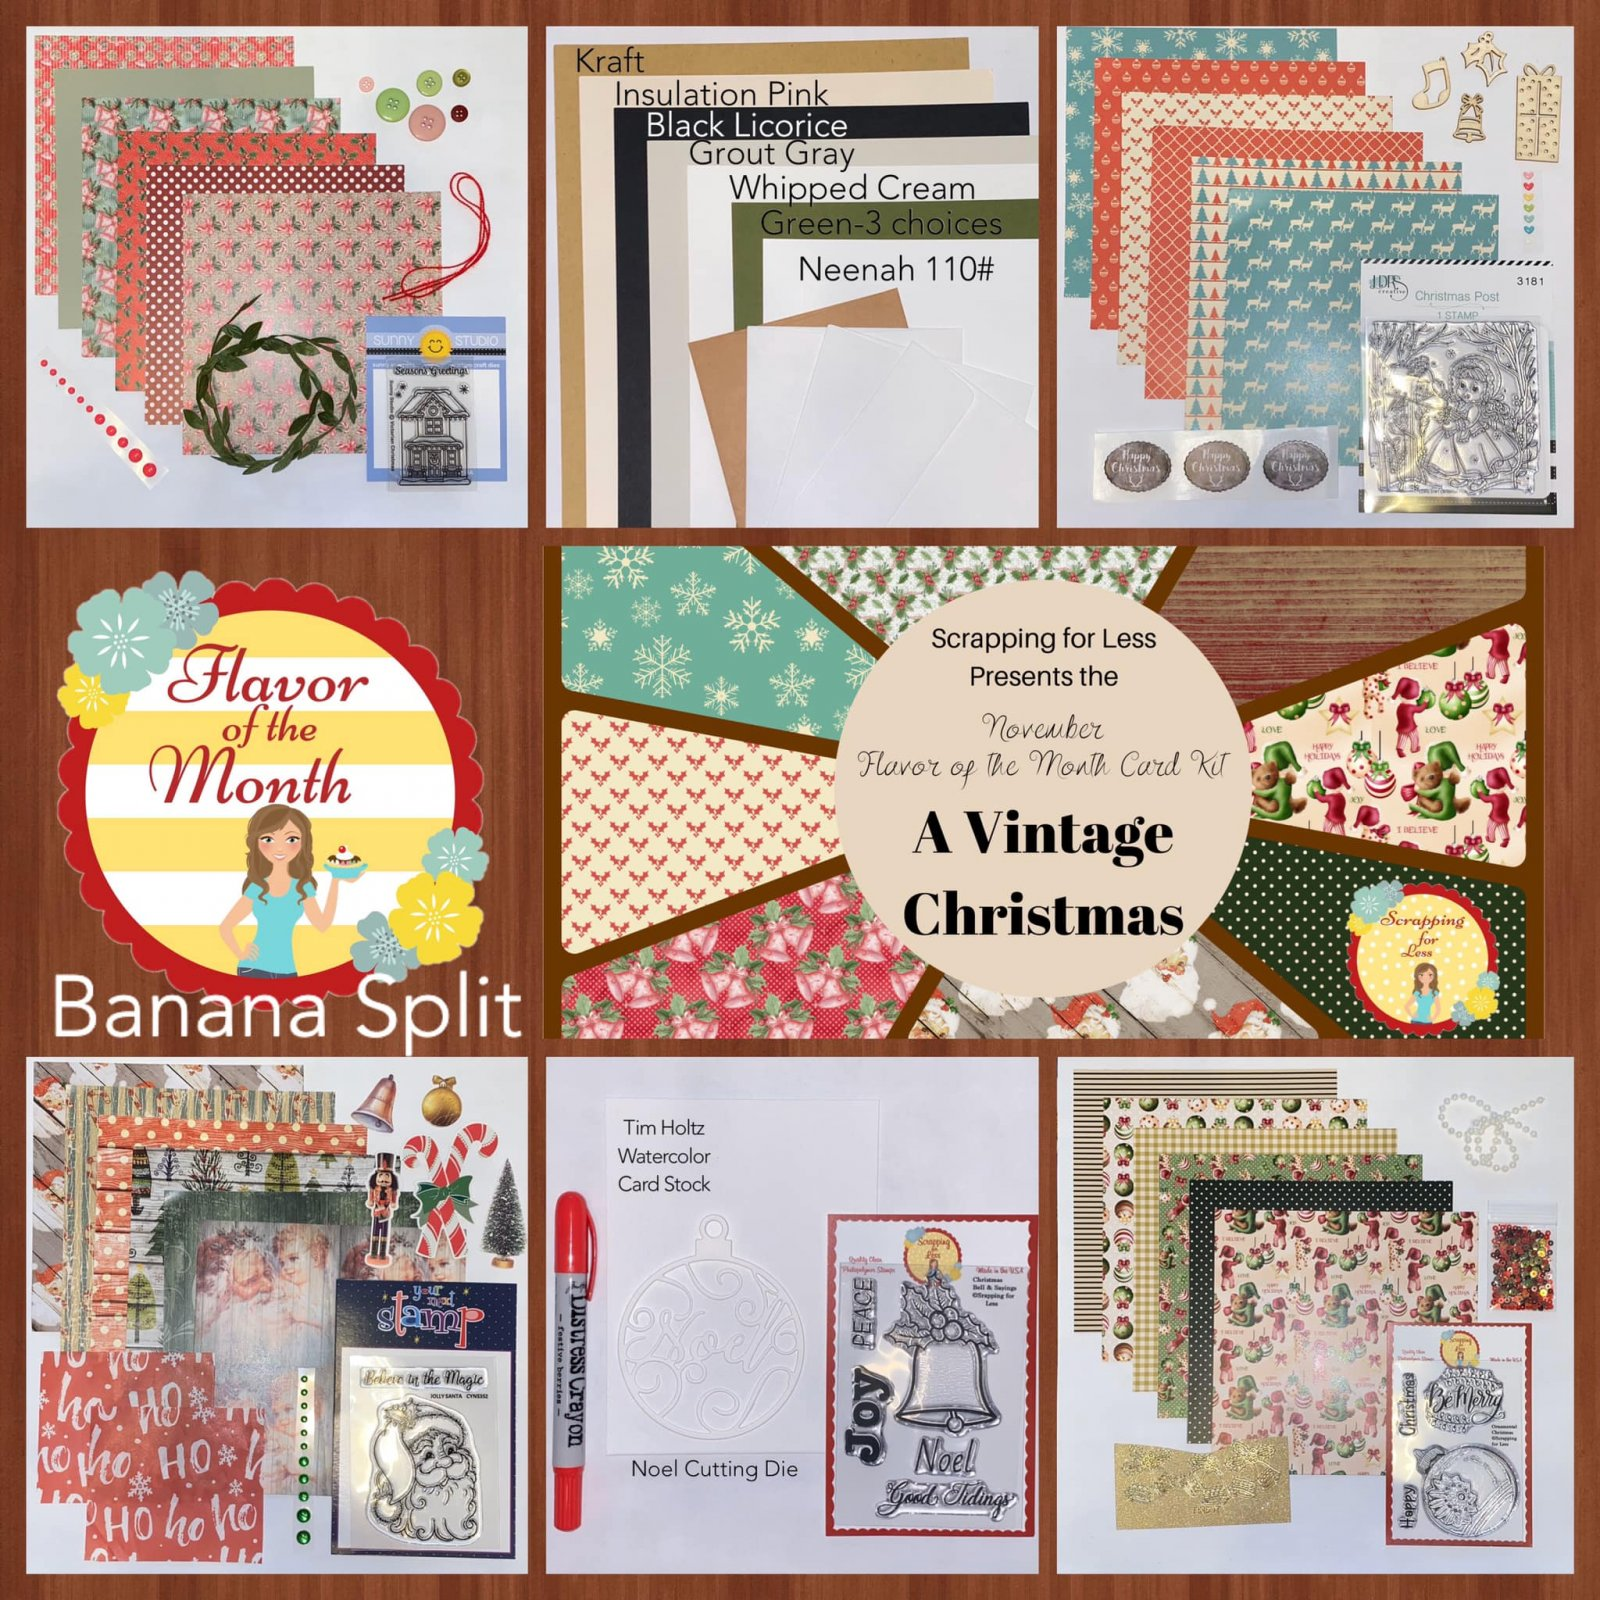 November 2019 Flavor of the Month Banana Split A Vintage Christmas